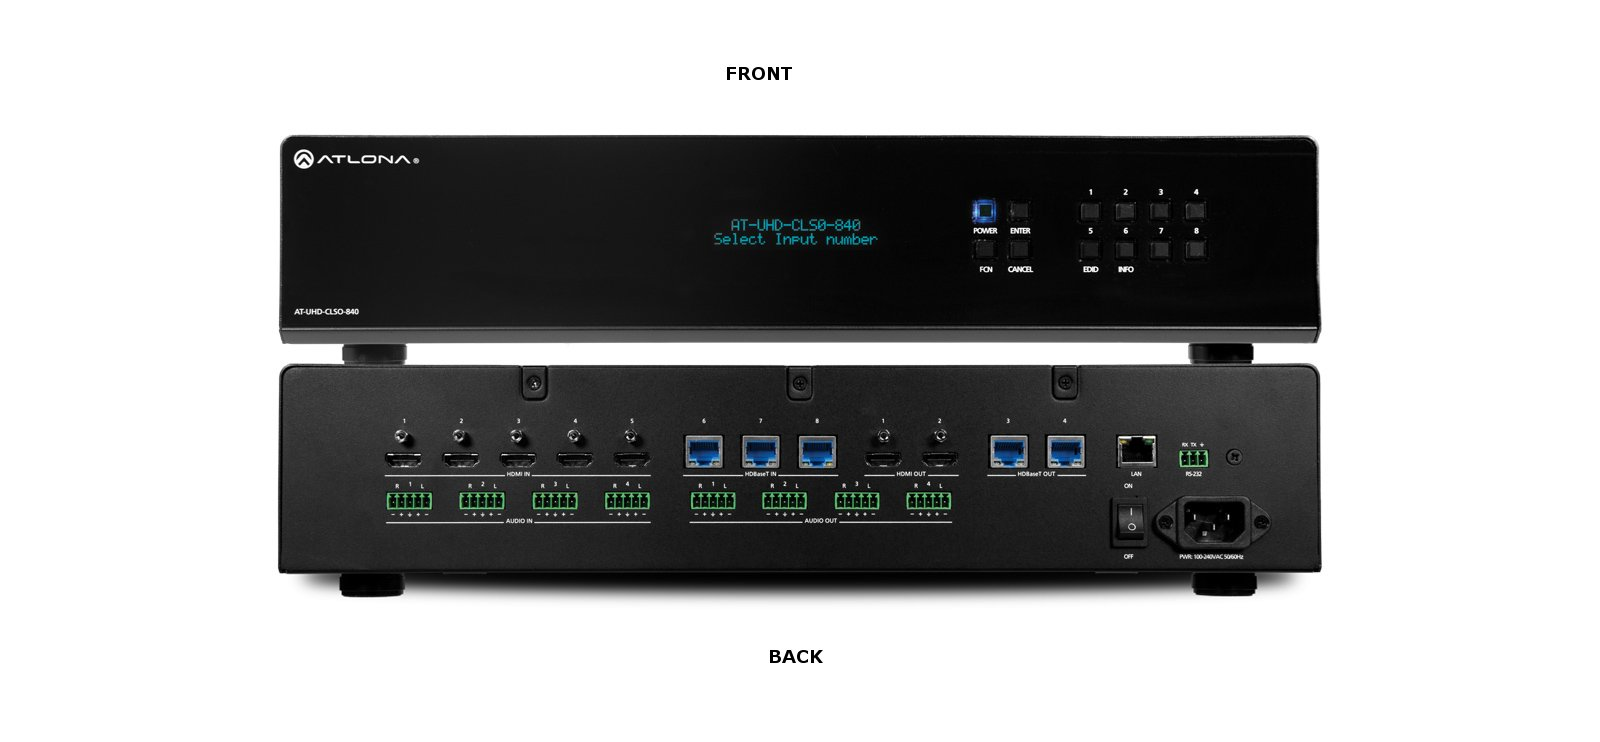 4K/UHD 8×4 HDBaseT and HDMI Matrix Switcher with PoE